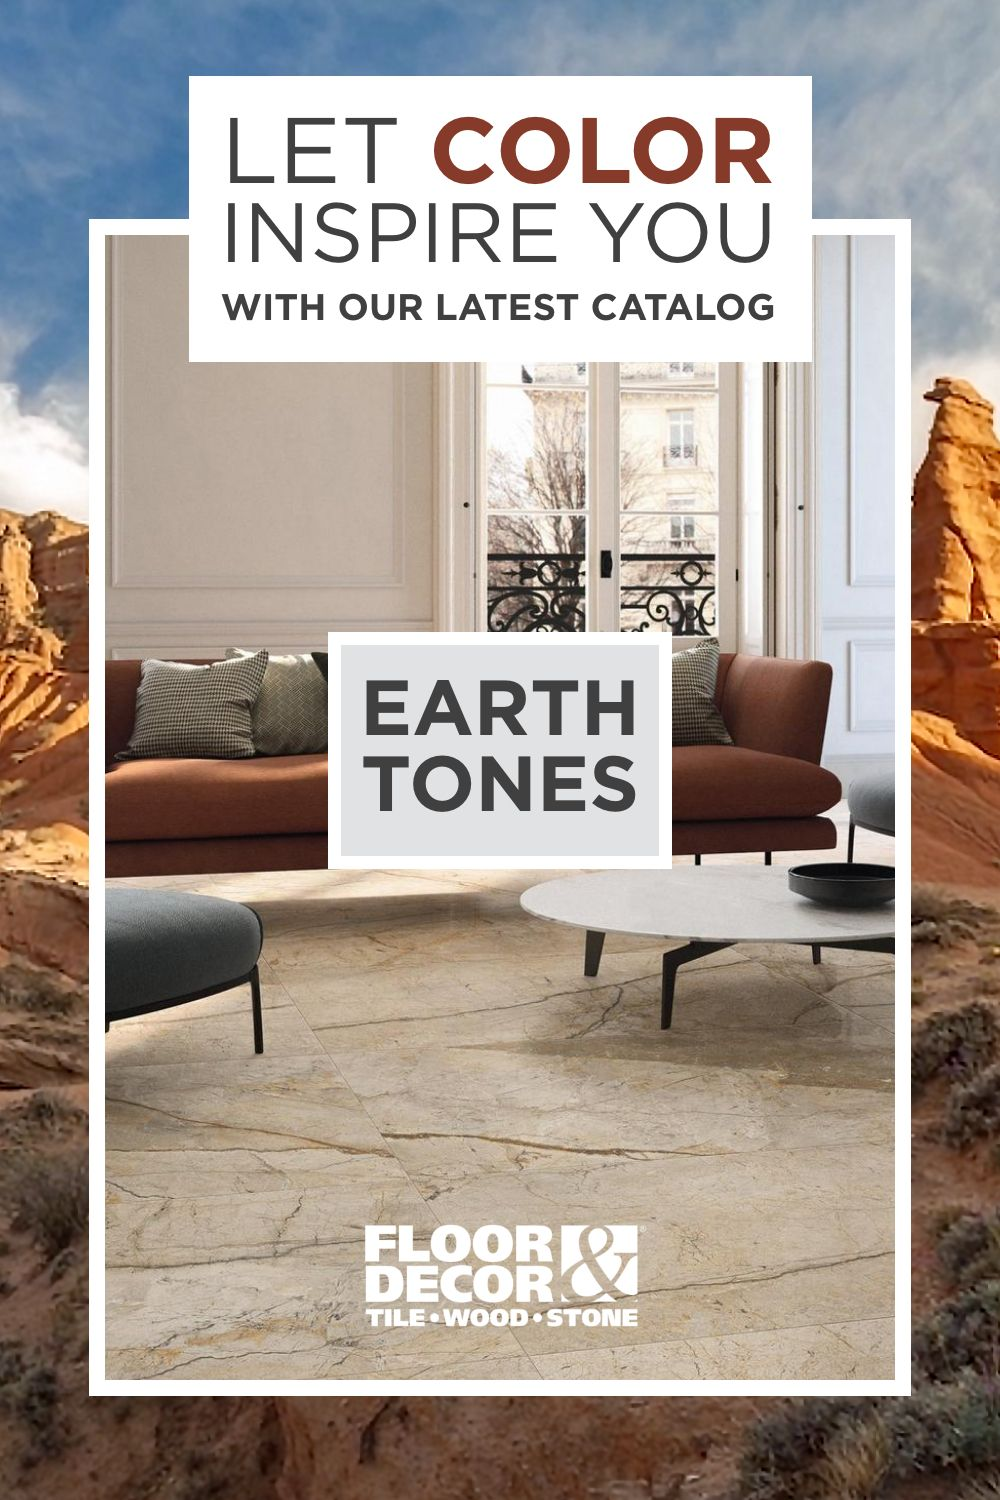 Find your zen within! View the Earth Tones collection in